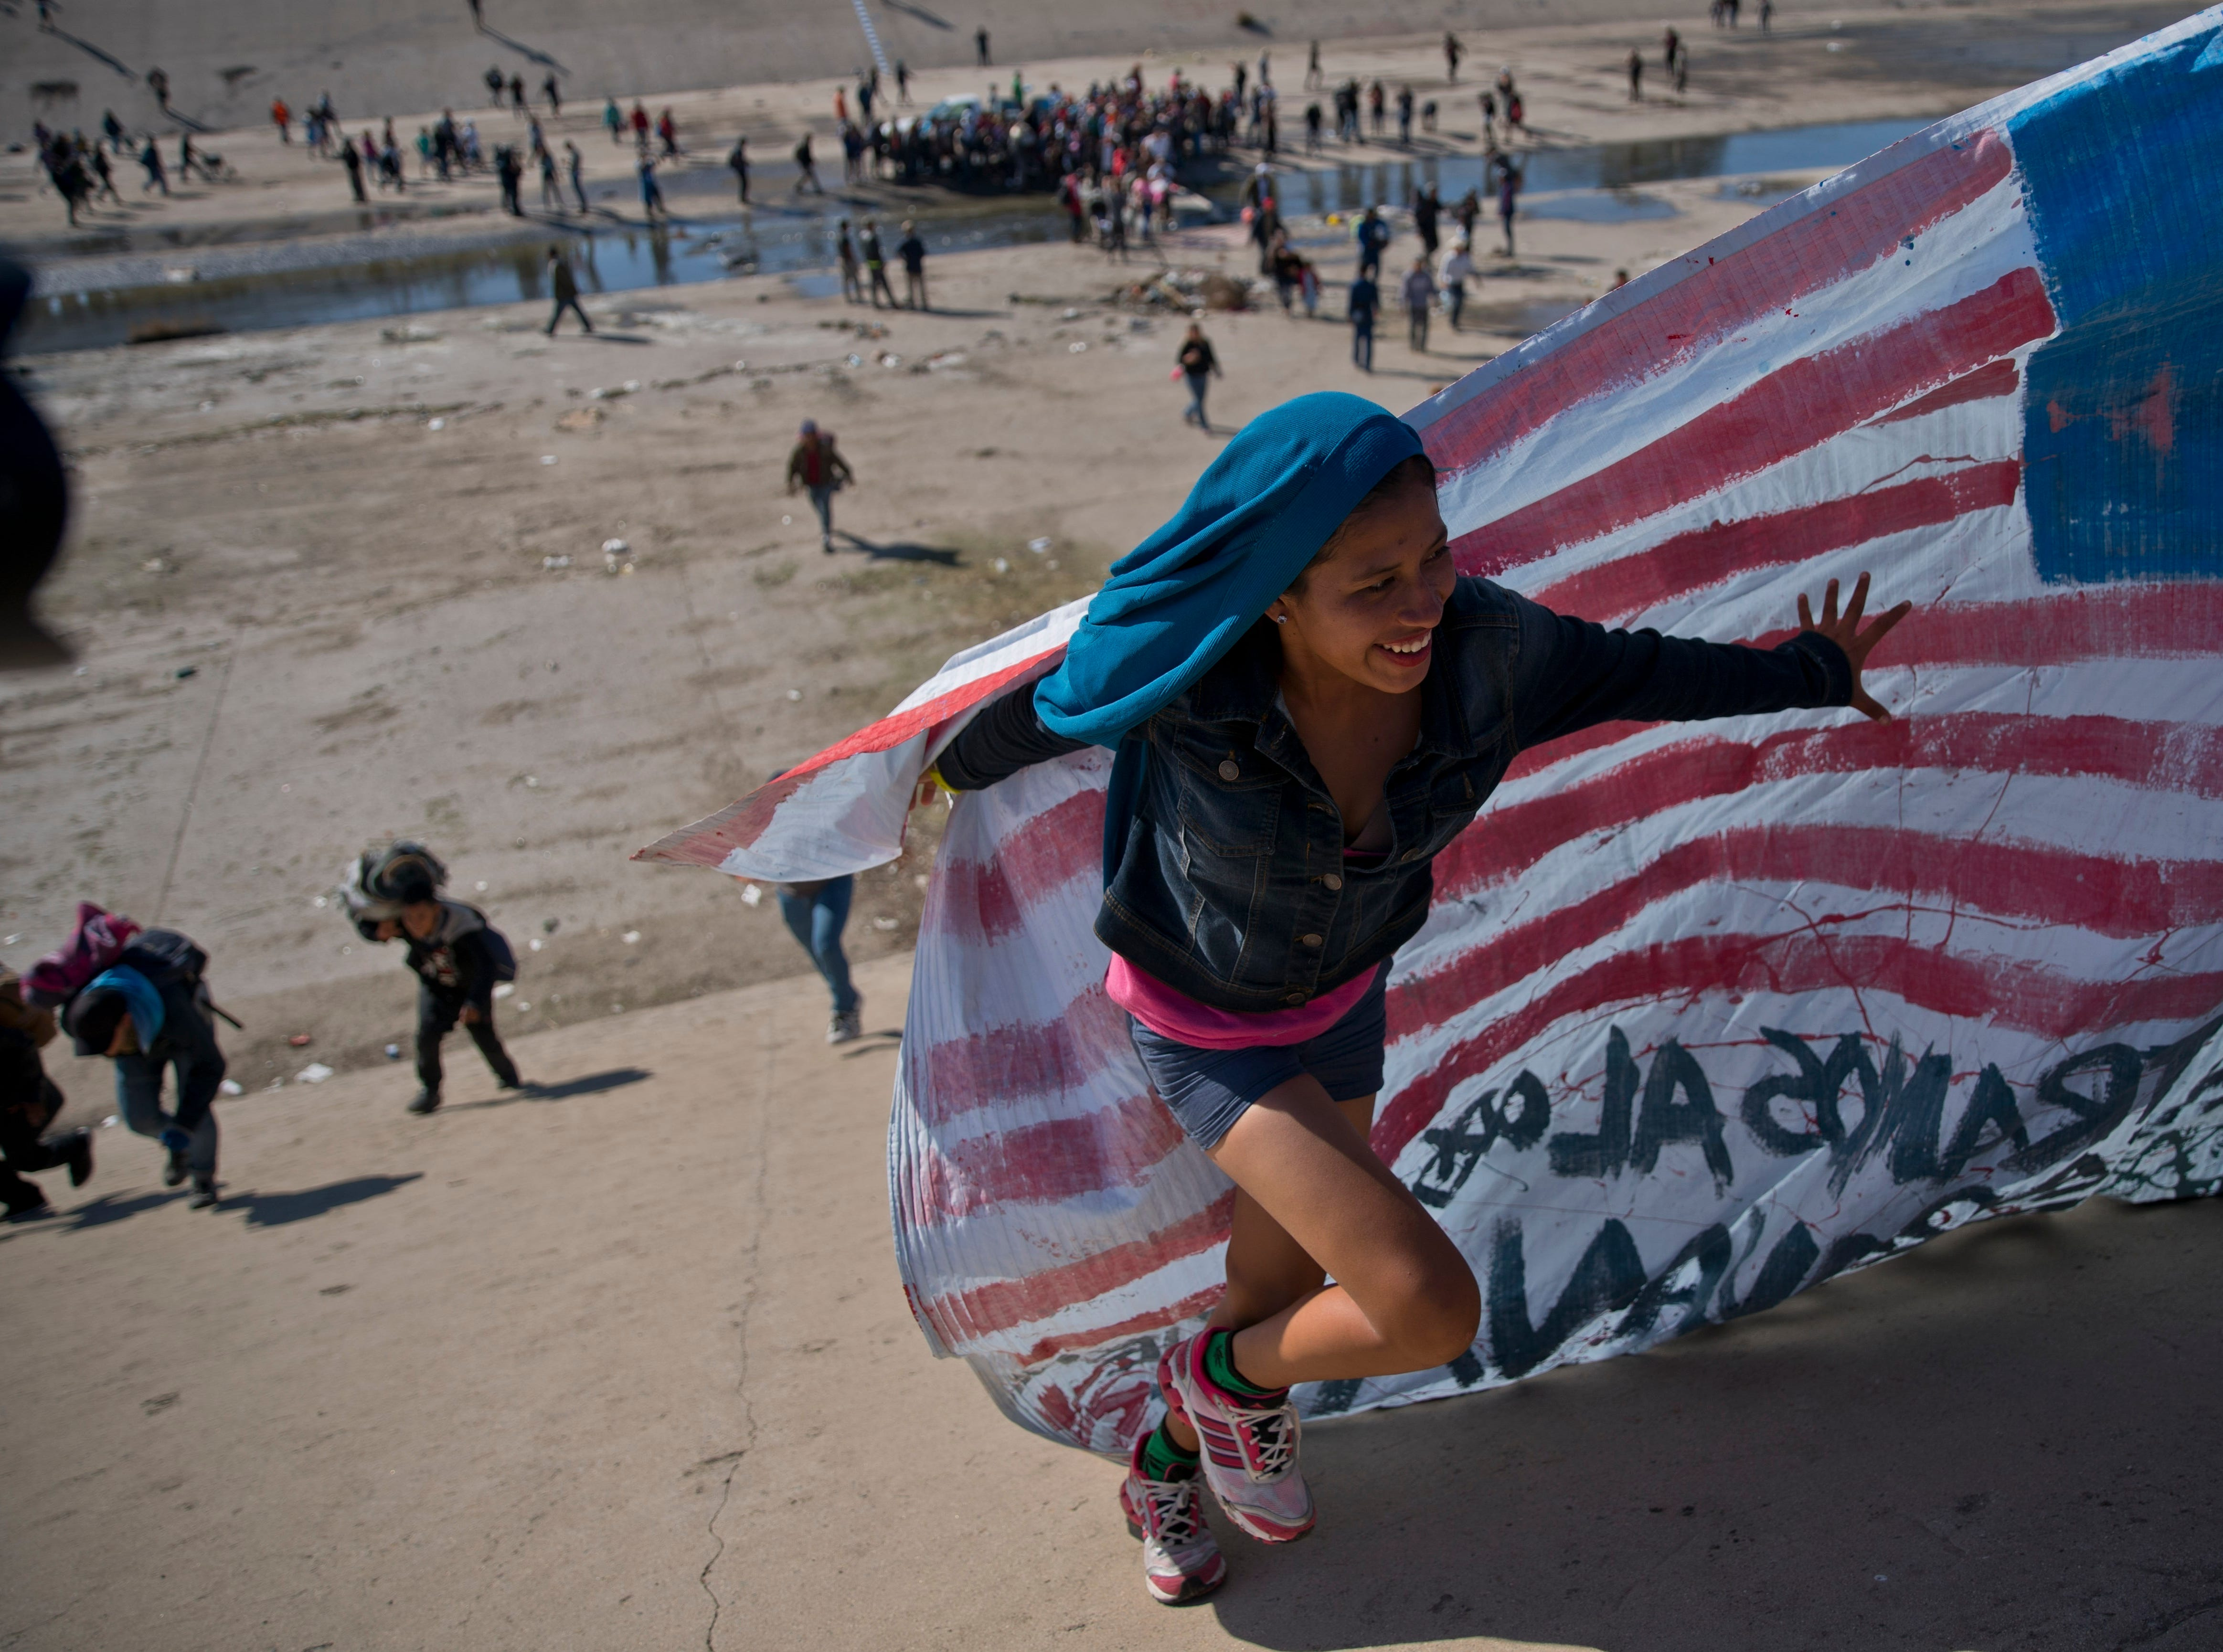 A migrant woman helps carry a handmade U.S. flag up the riverbank at the Mexico-U.S. border after getting past Mexican police at the Chaparral border crossing in Tijuana, Mexico, Sunday, Nov. 25, 2018, as a group of migrants tries to reach the U.S. The mayor of Tijuana has declared a humanitarian crisis in his border city and says that he has asked the United Nations for aid to deal with the approximately 5,000 Central American migrants who have arrived in the city.